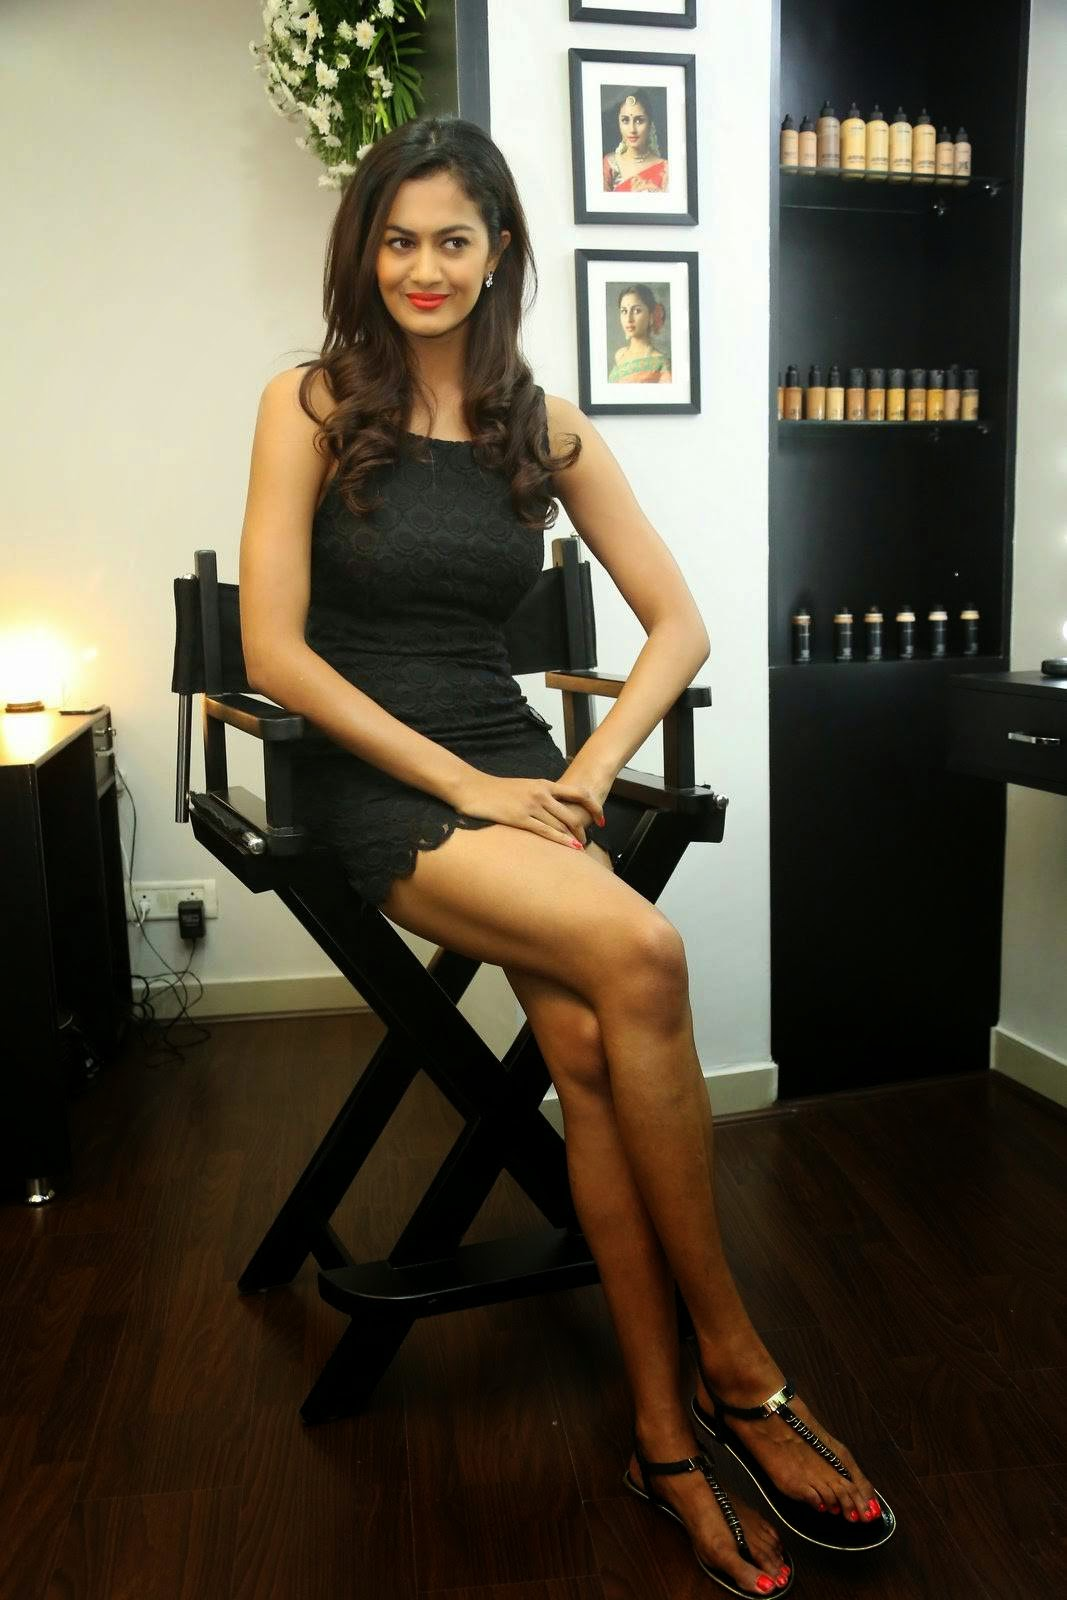 Shubra Aiyappa images, Shubra Aiyappa Hot Legs & thighs images in Short black Dress